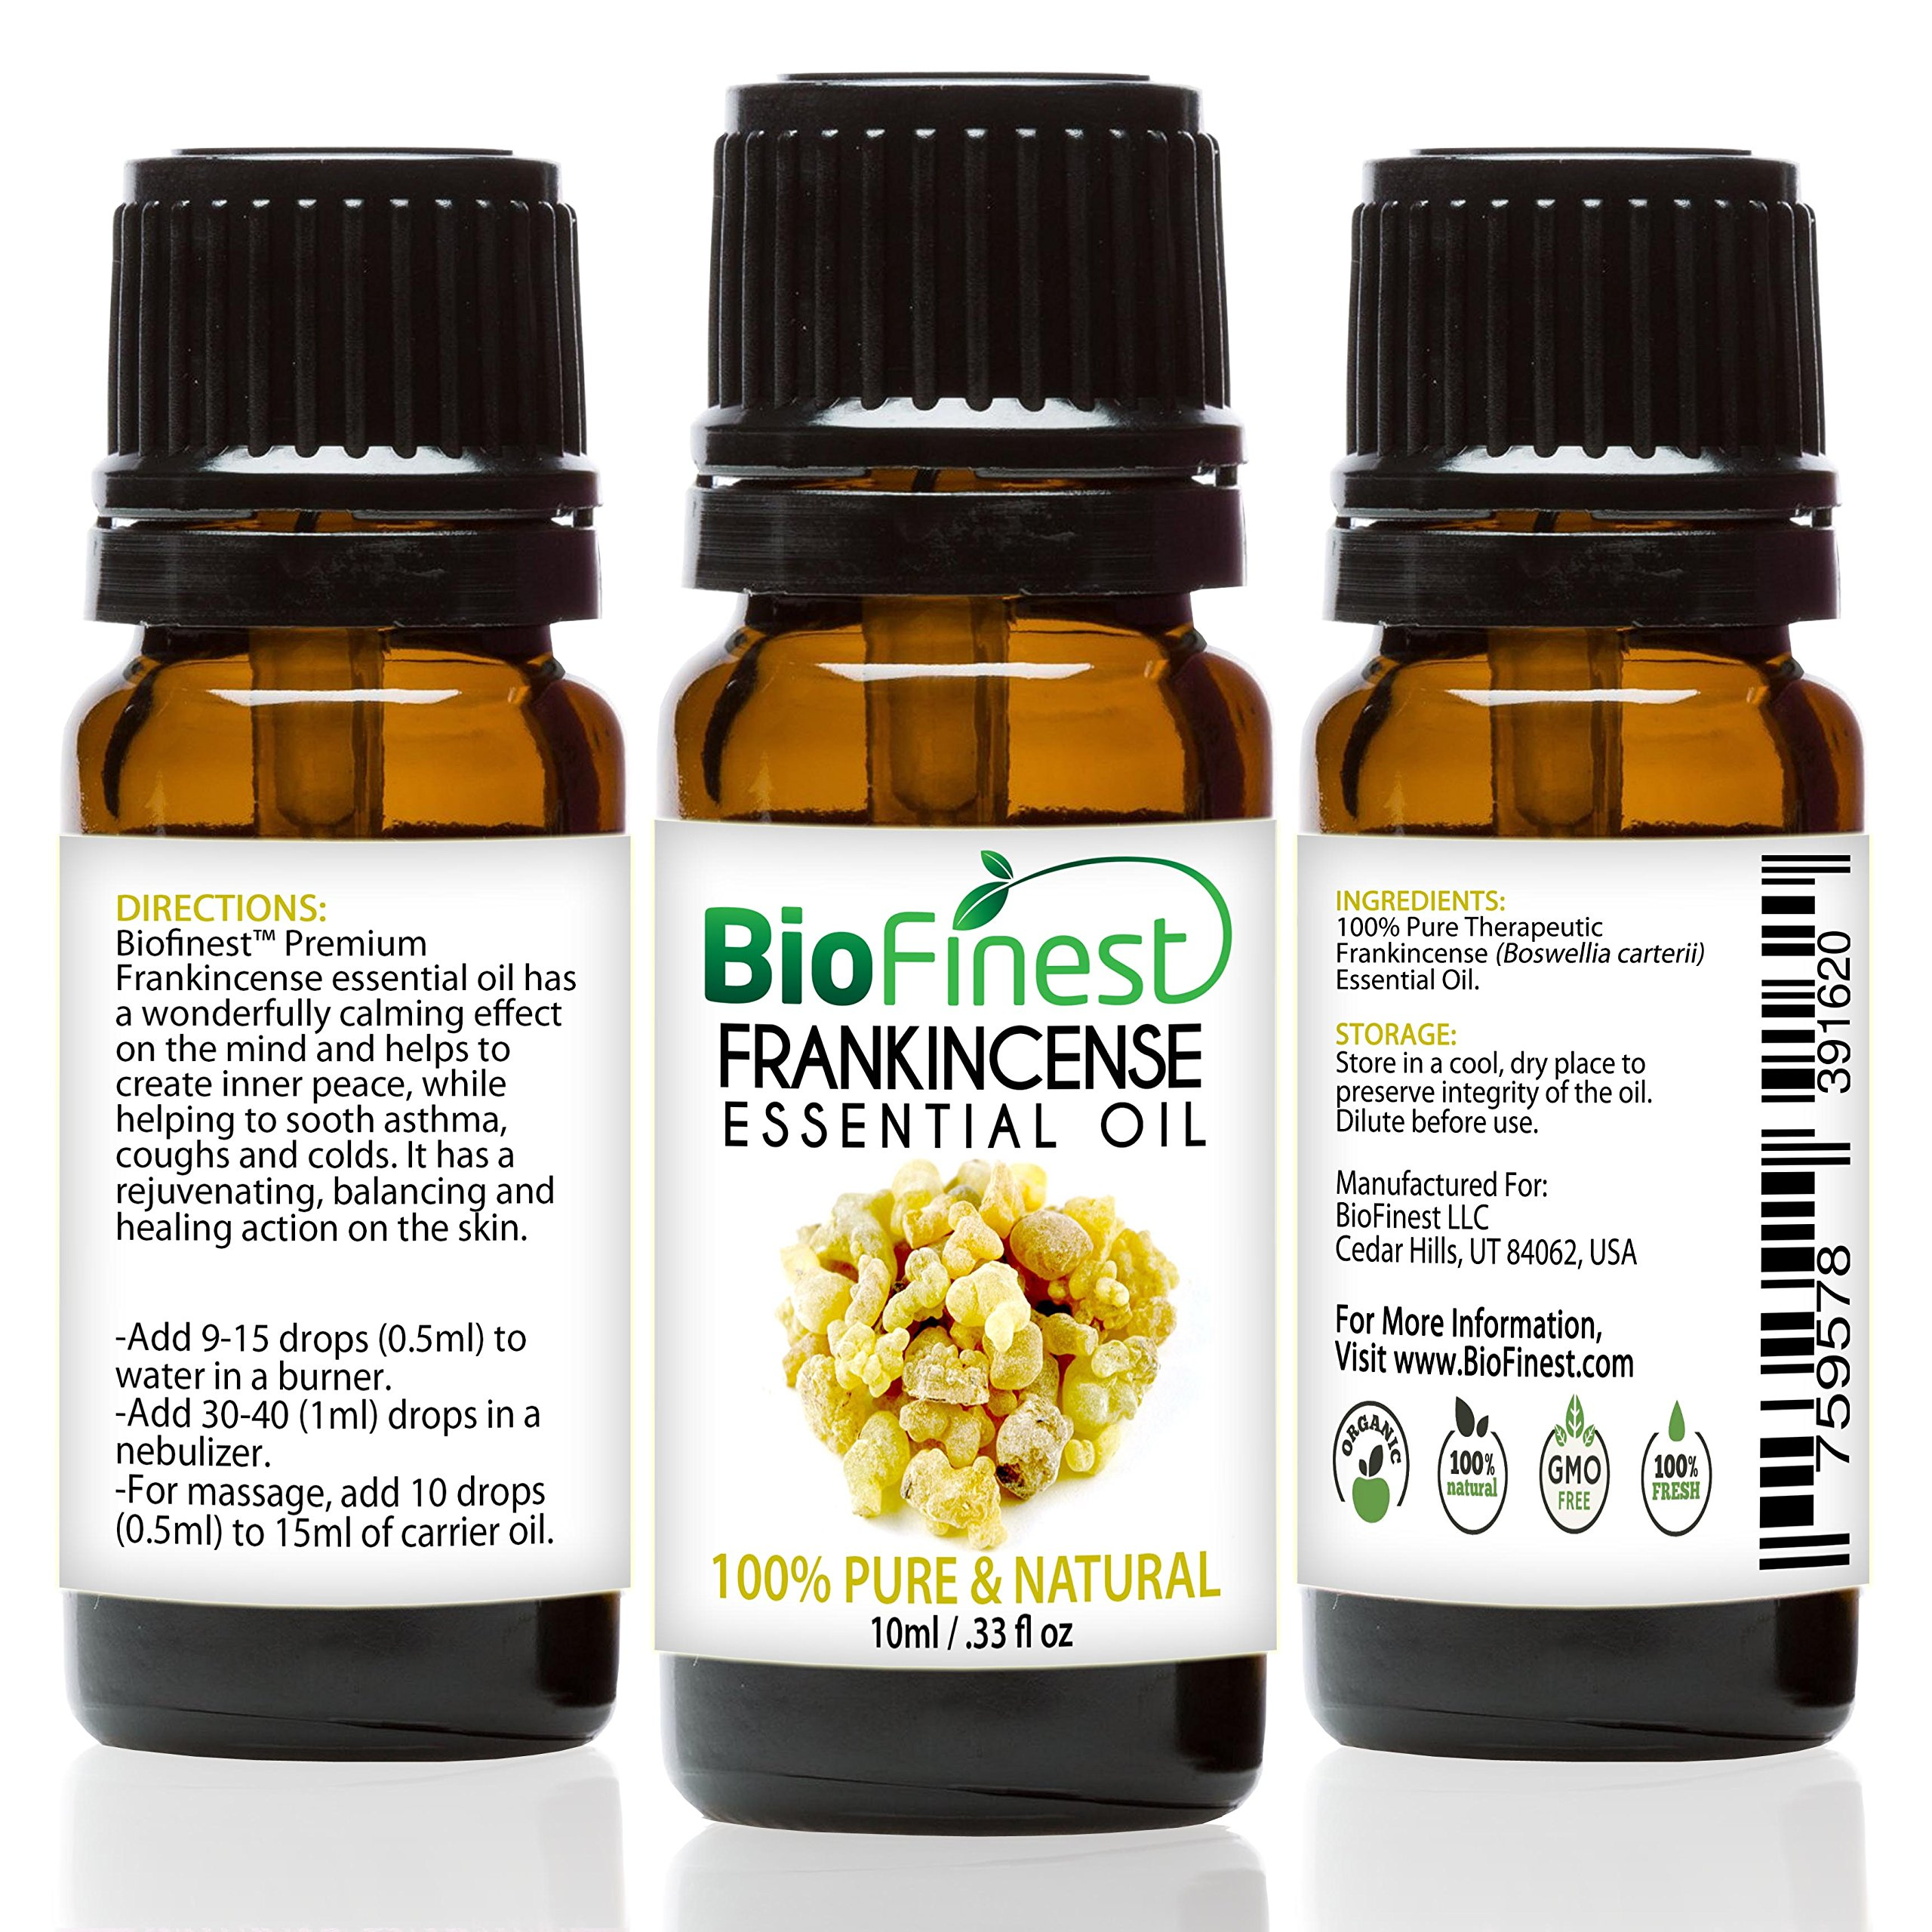 BioFinest Frankincense Oil - 100% Pure Frankincense Essential Oil - Therapeutic Grade - Premium Quality - Best For Immune System, Wrinkles, Scars & Stretch Marks - FREE E-Book (10ml)